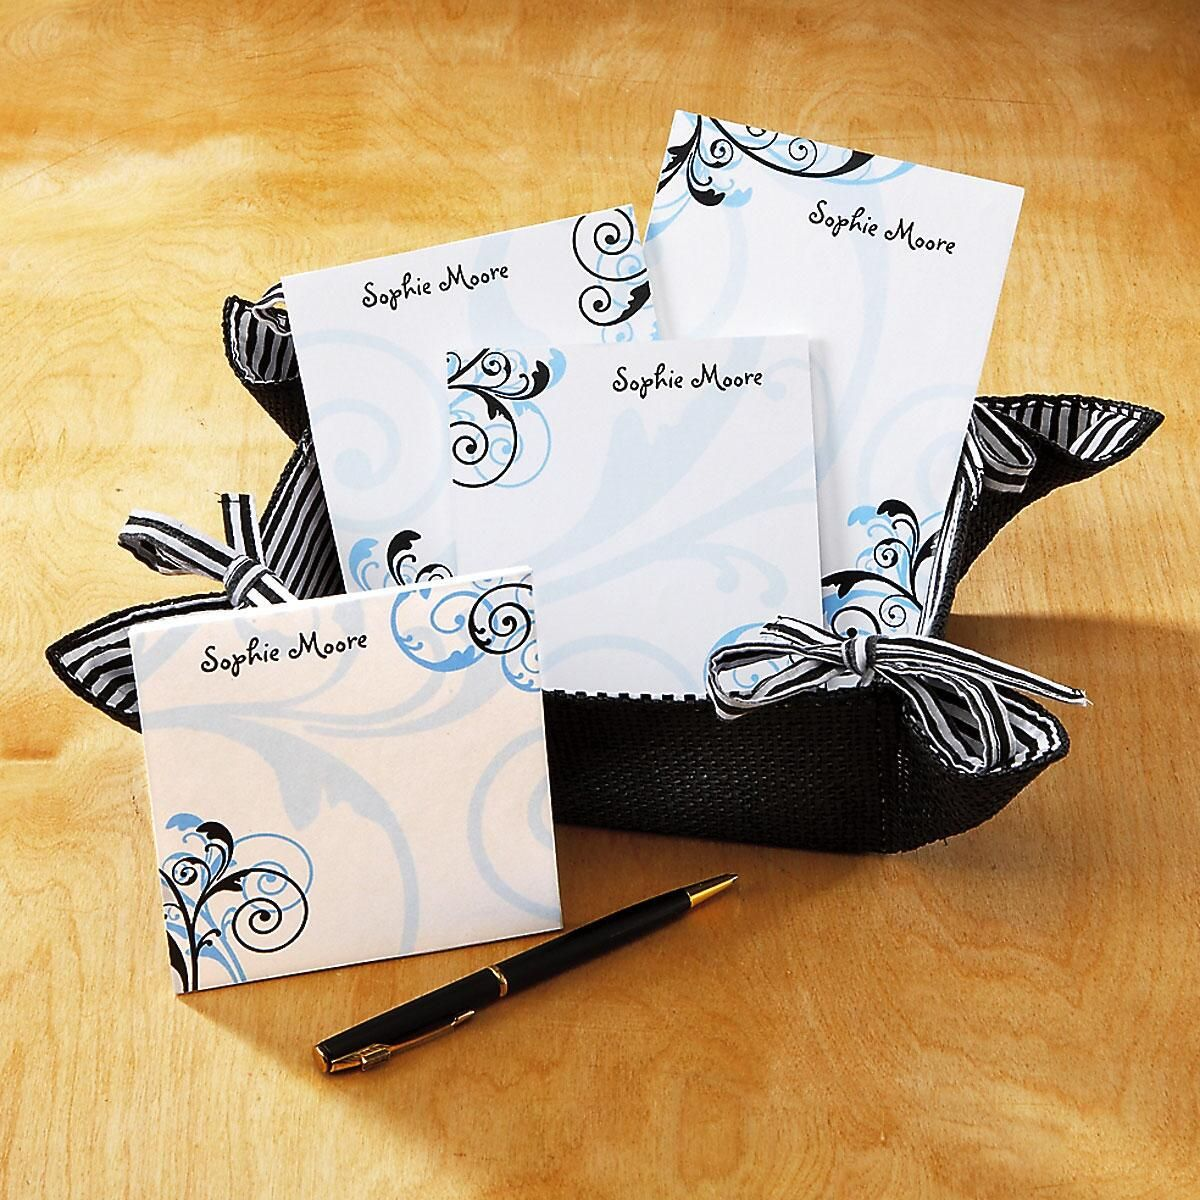 Personalized Notepads in a Basket